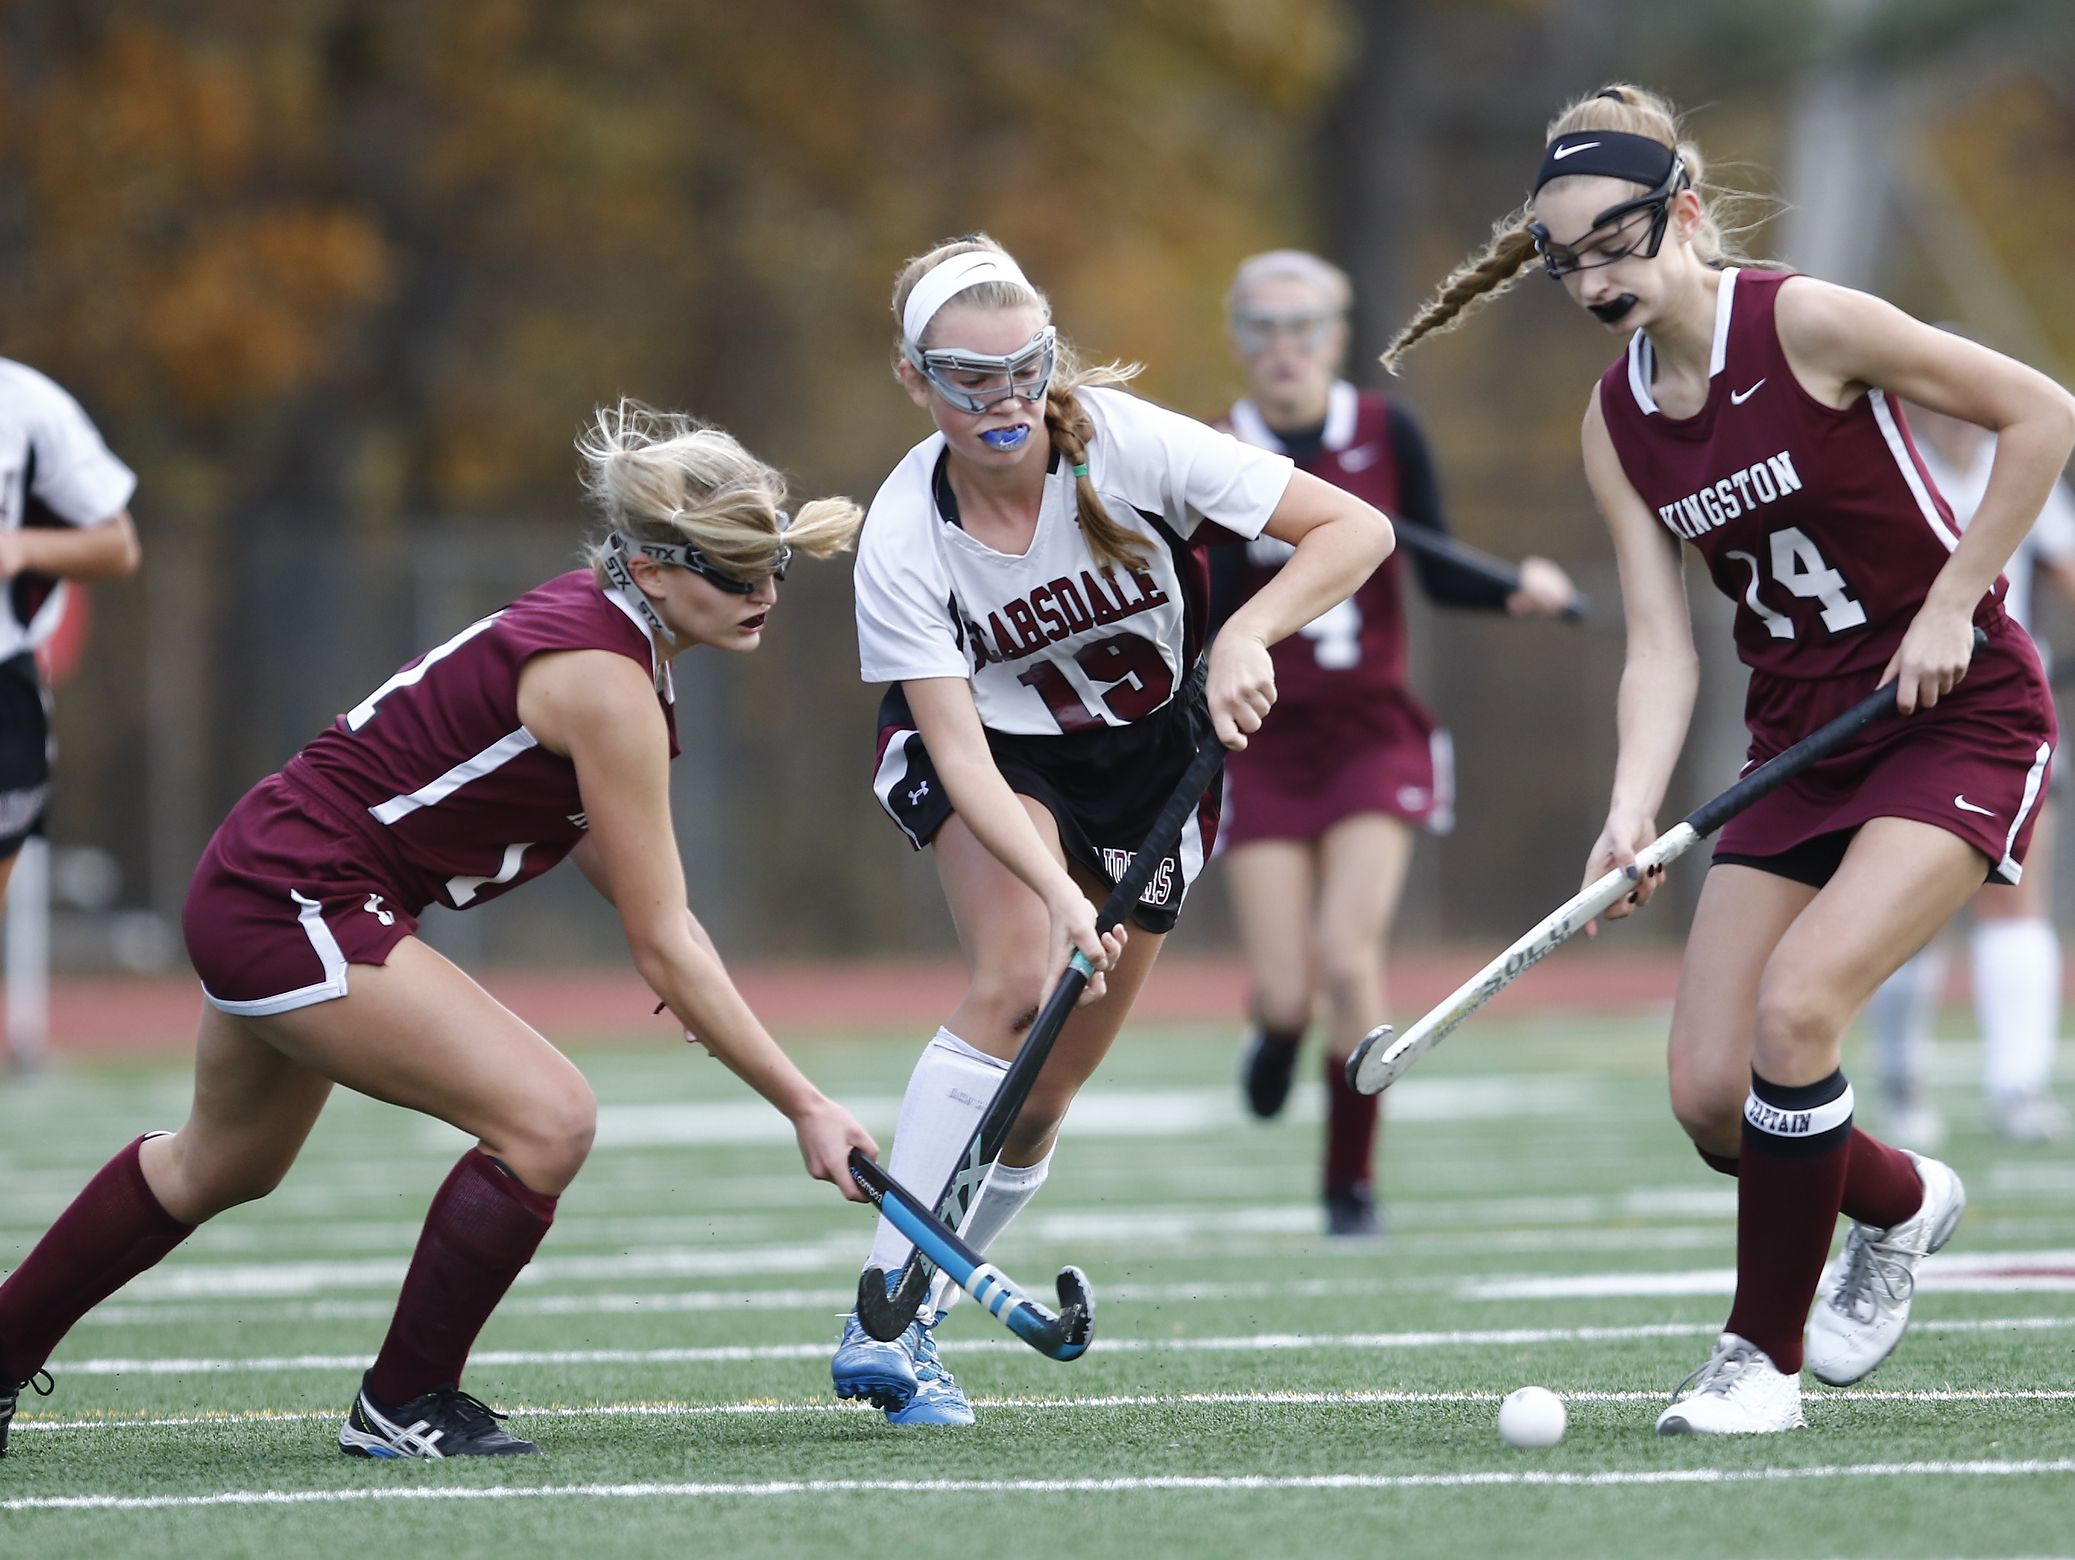 Scarsdale's Sophia Franco (19) splits the Kingston defense during their 5-0 win in the Class A regional championship field hockey game at Valhalla High School on Saturday, November 5, 2016.